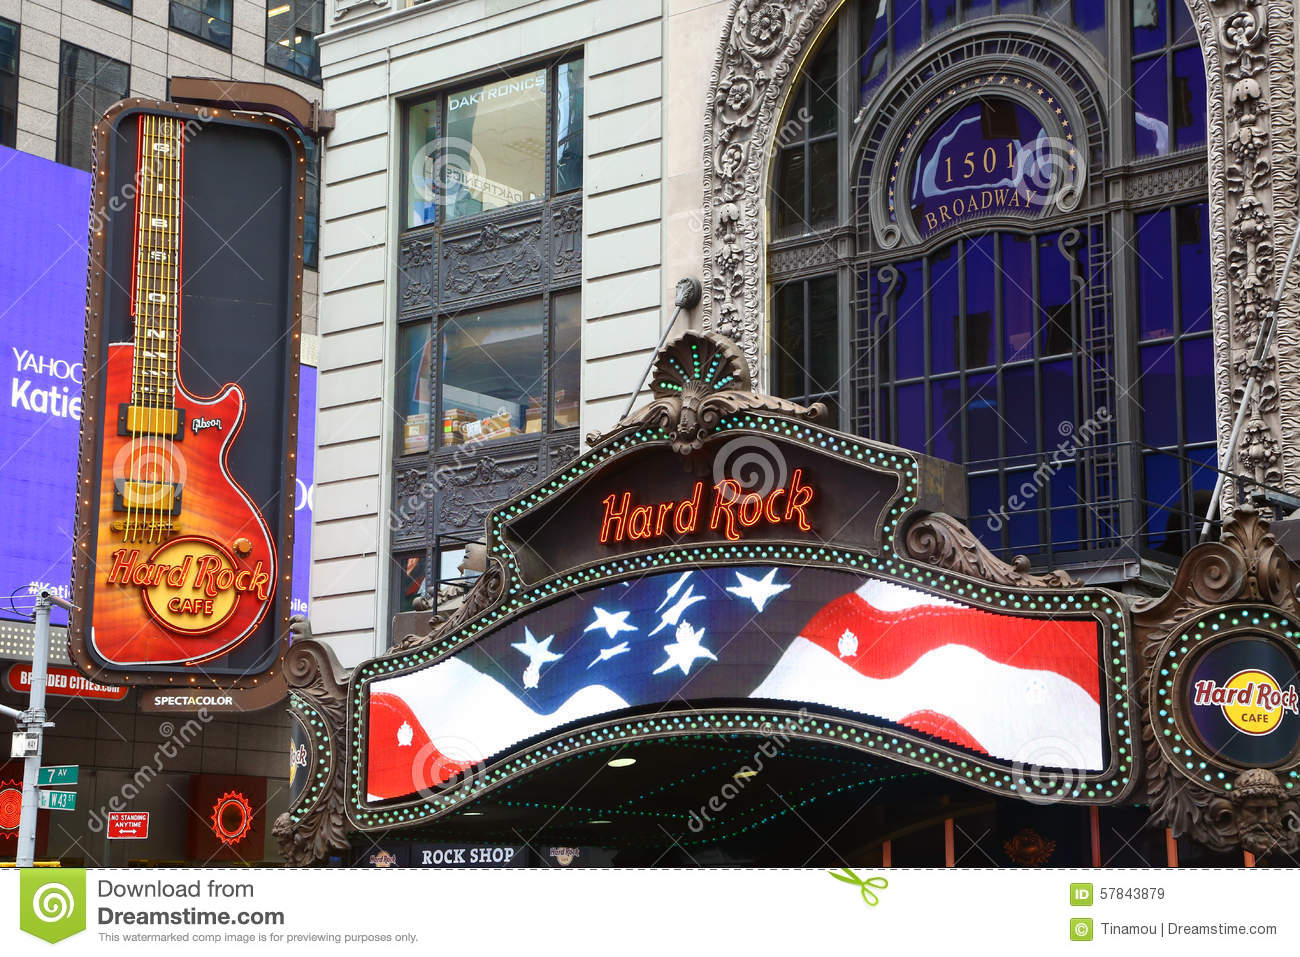 Hard Rock Cafe New York Prices